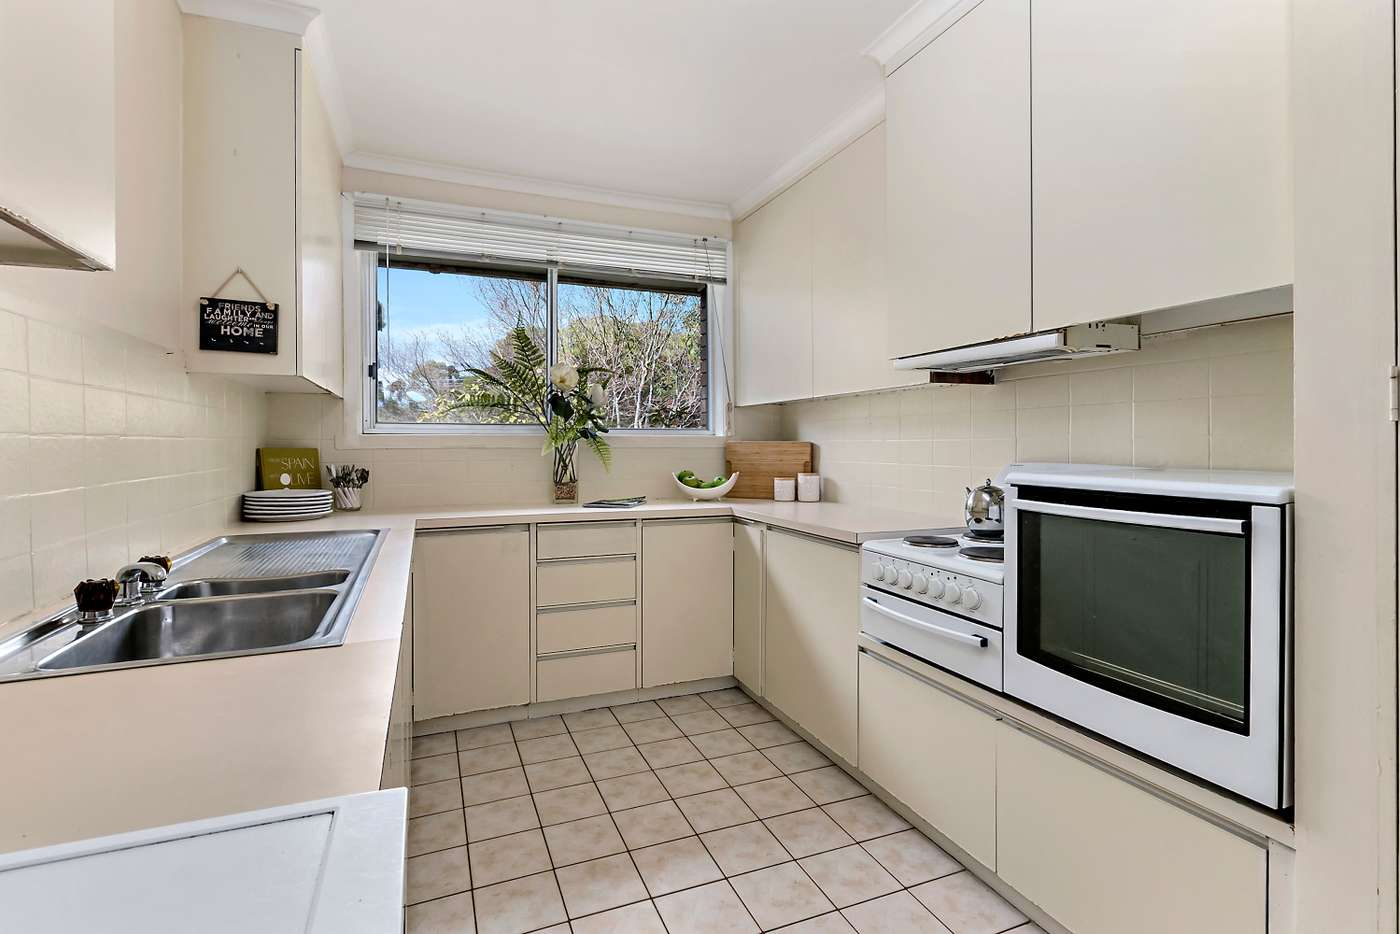 Fifth view of Homely house listing, 22 Corks Road, Macedon VIC 3440